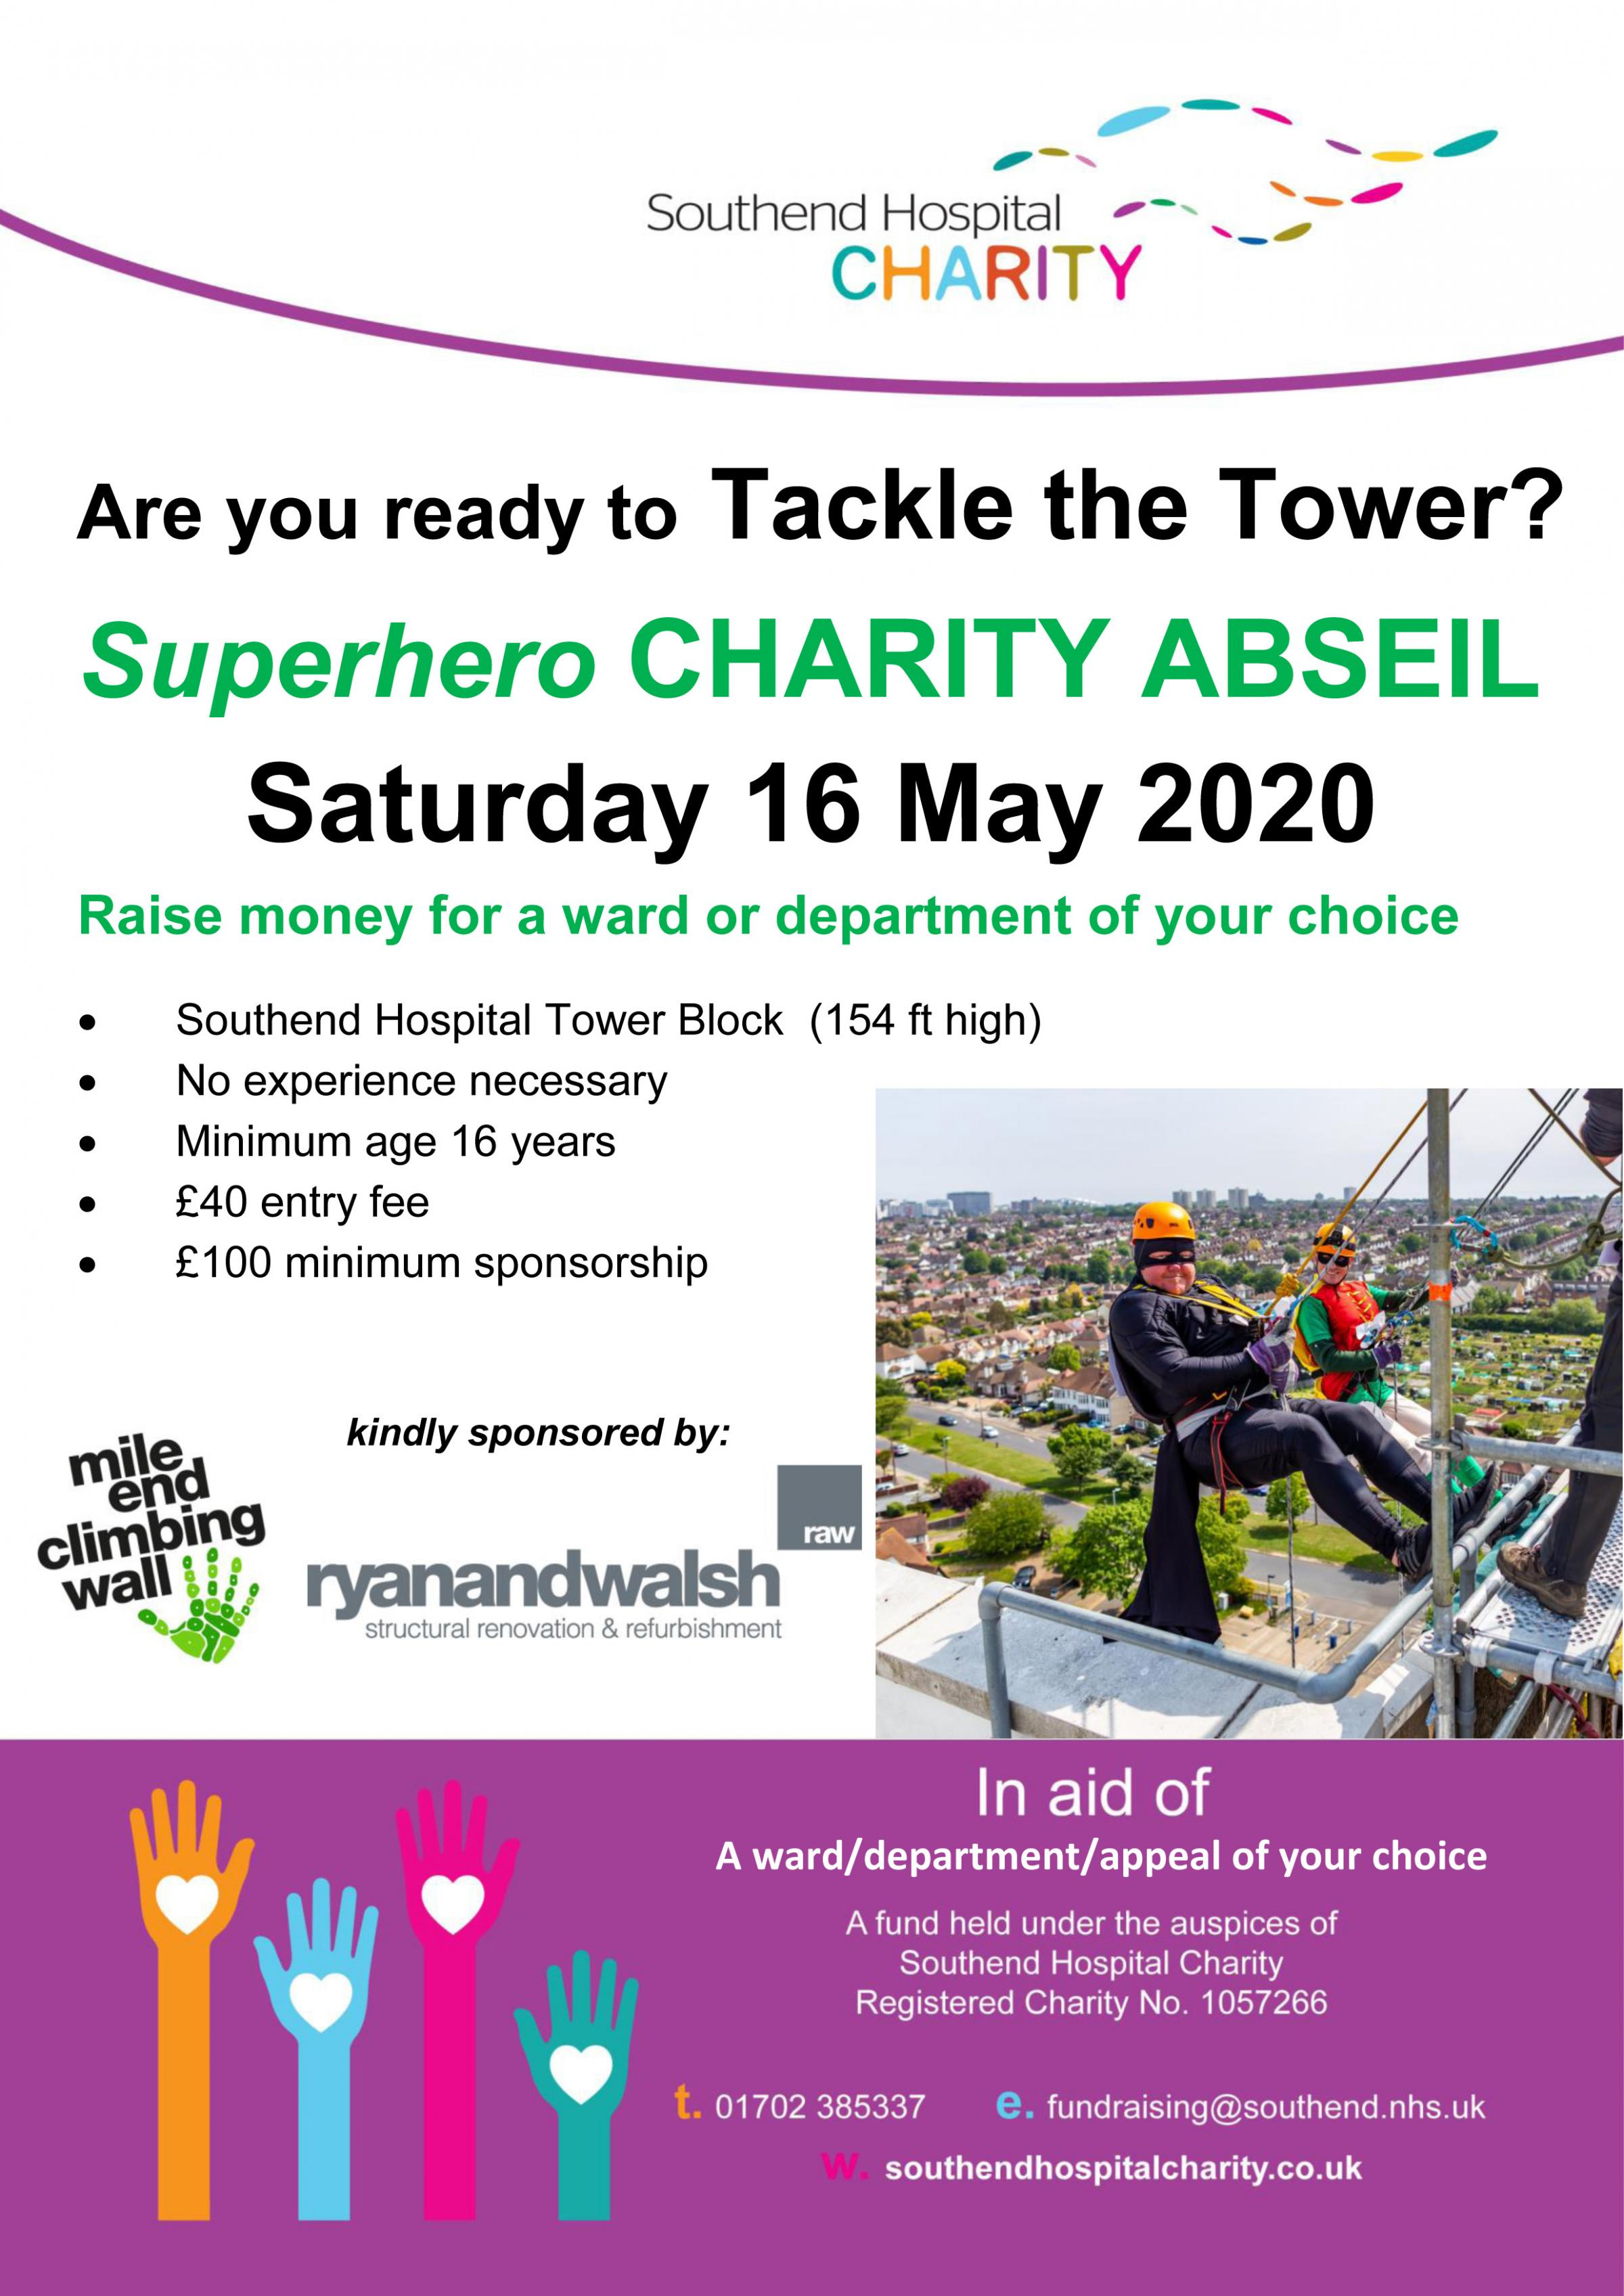 Superhero Charity Abseil